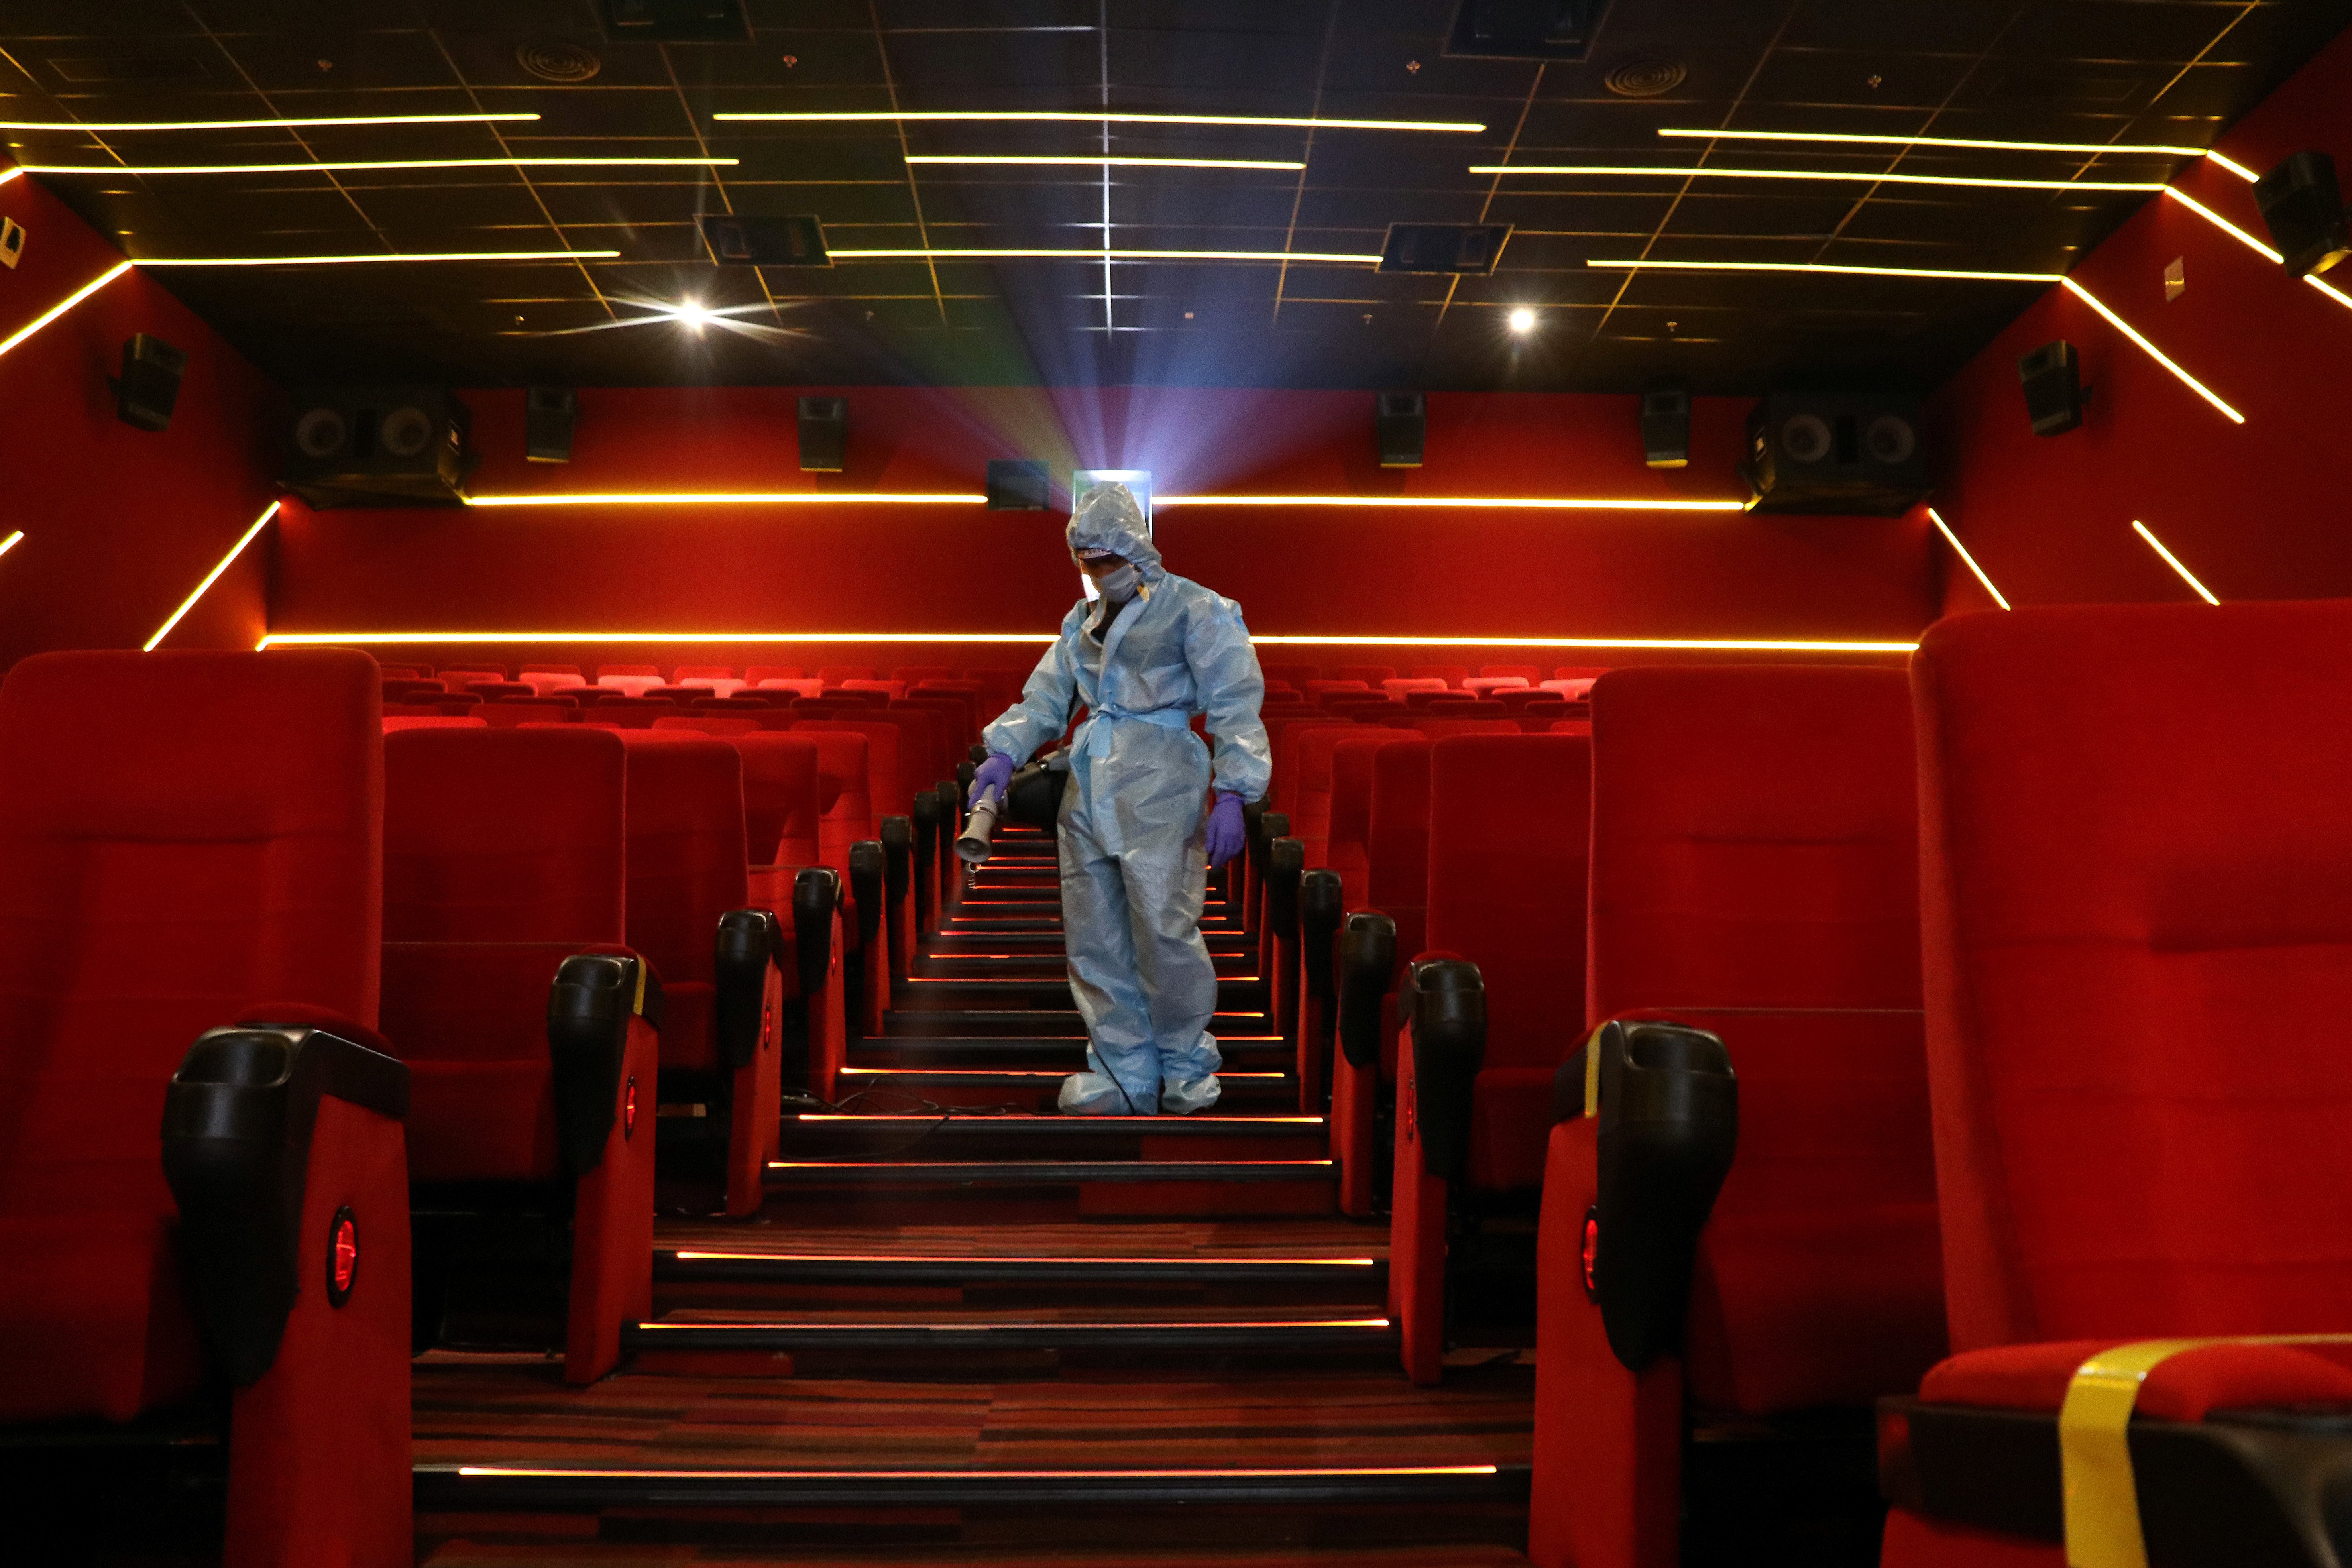 A worker wearing personal protective equipment (PPE) sanitizes seats inside the Inox Leisure movie theatre ahead of its reopening, amidst the outbreak of the coronavirus disease (COVID-19), in Mumbai, India, October 13, 2020. REUTERS/Niharika Kulkarni - RC2NHJ9WXDTJ